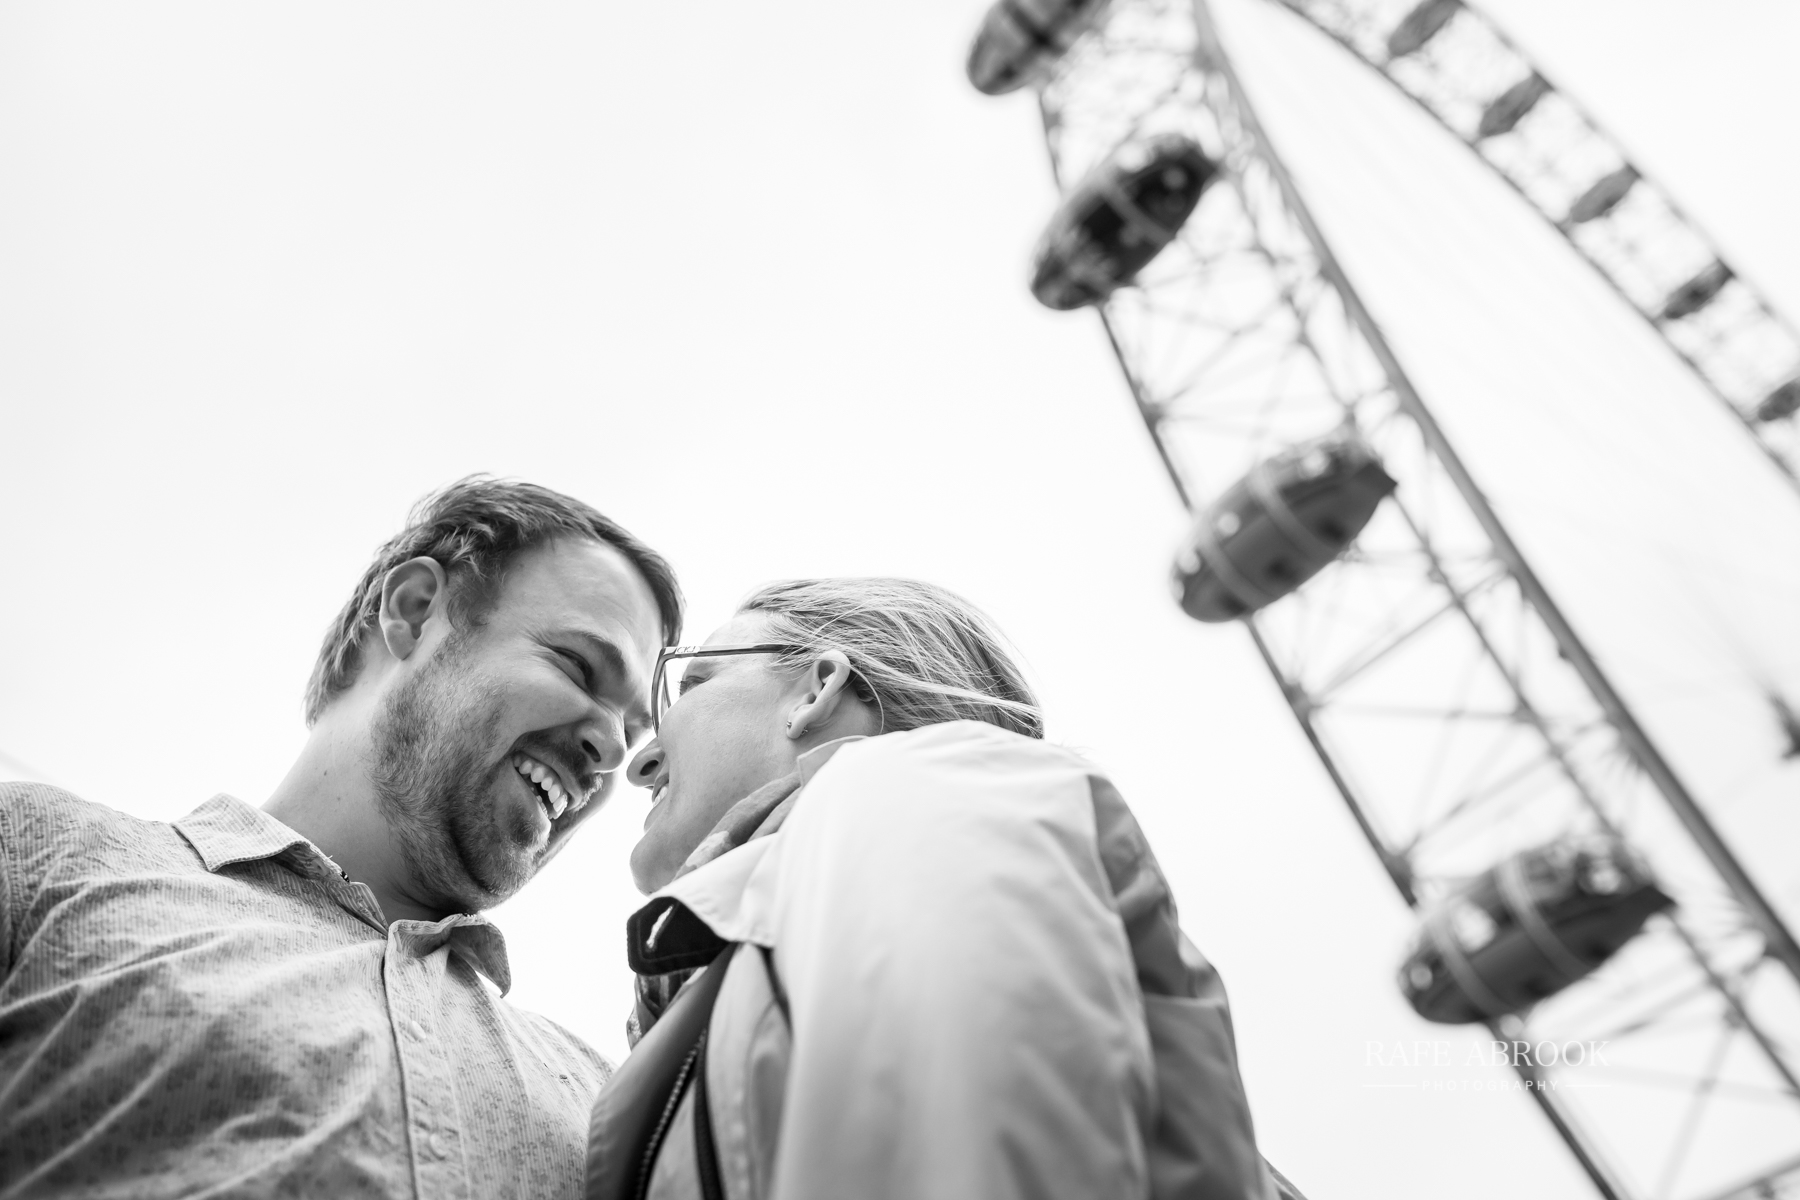 wedding photographer hertfordshire rafe abrook photography london city southbank engagement shoot-1012.jpg